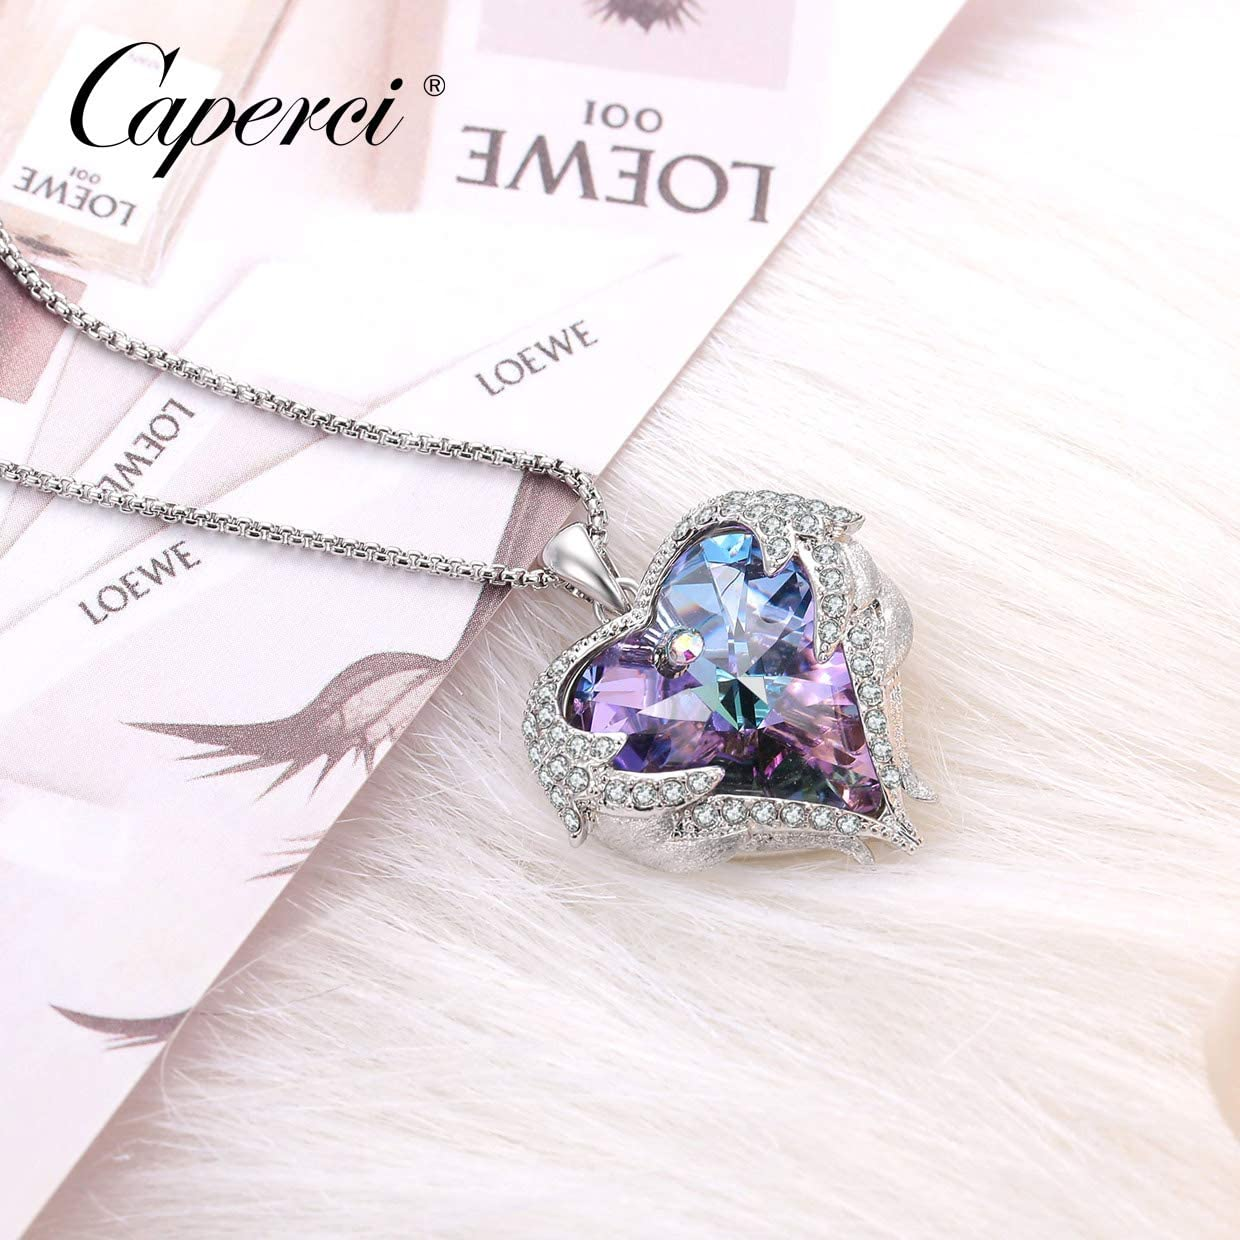 Caperci Angel Wings Heart Swarovski Crystal Pendant Necklace - Romantic Valentine's Day Jewelry Gifts for Her